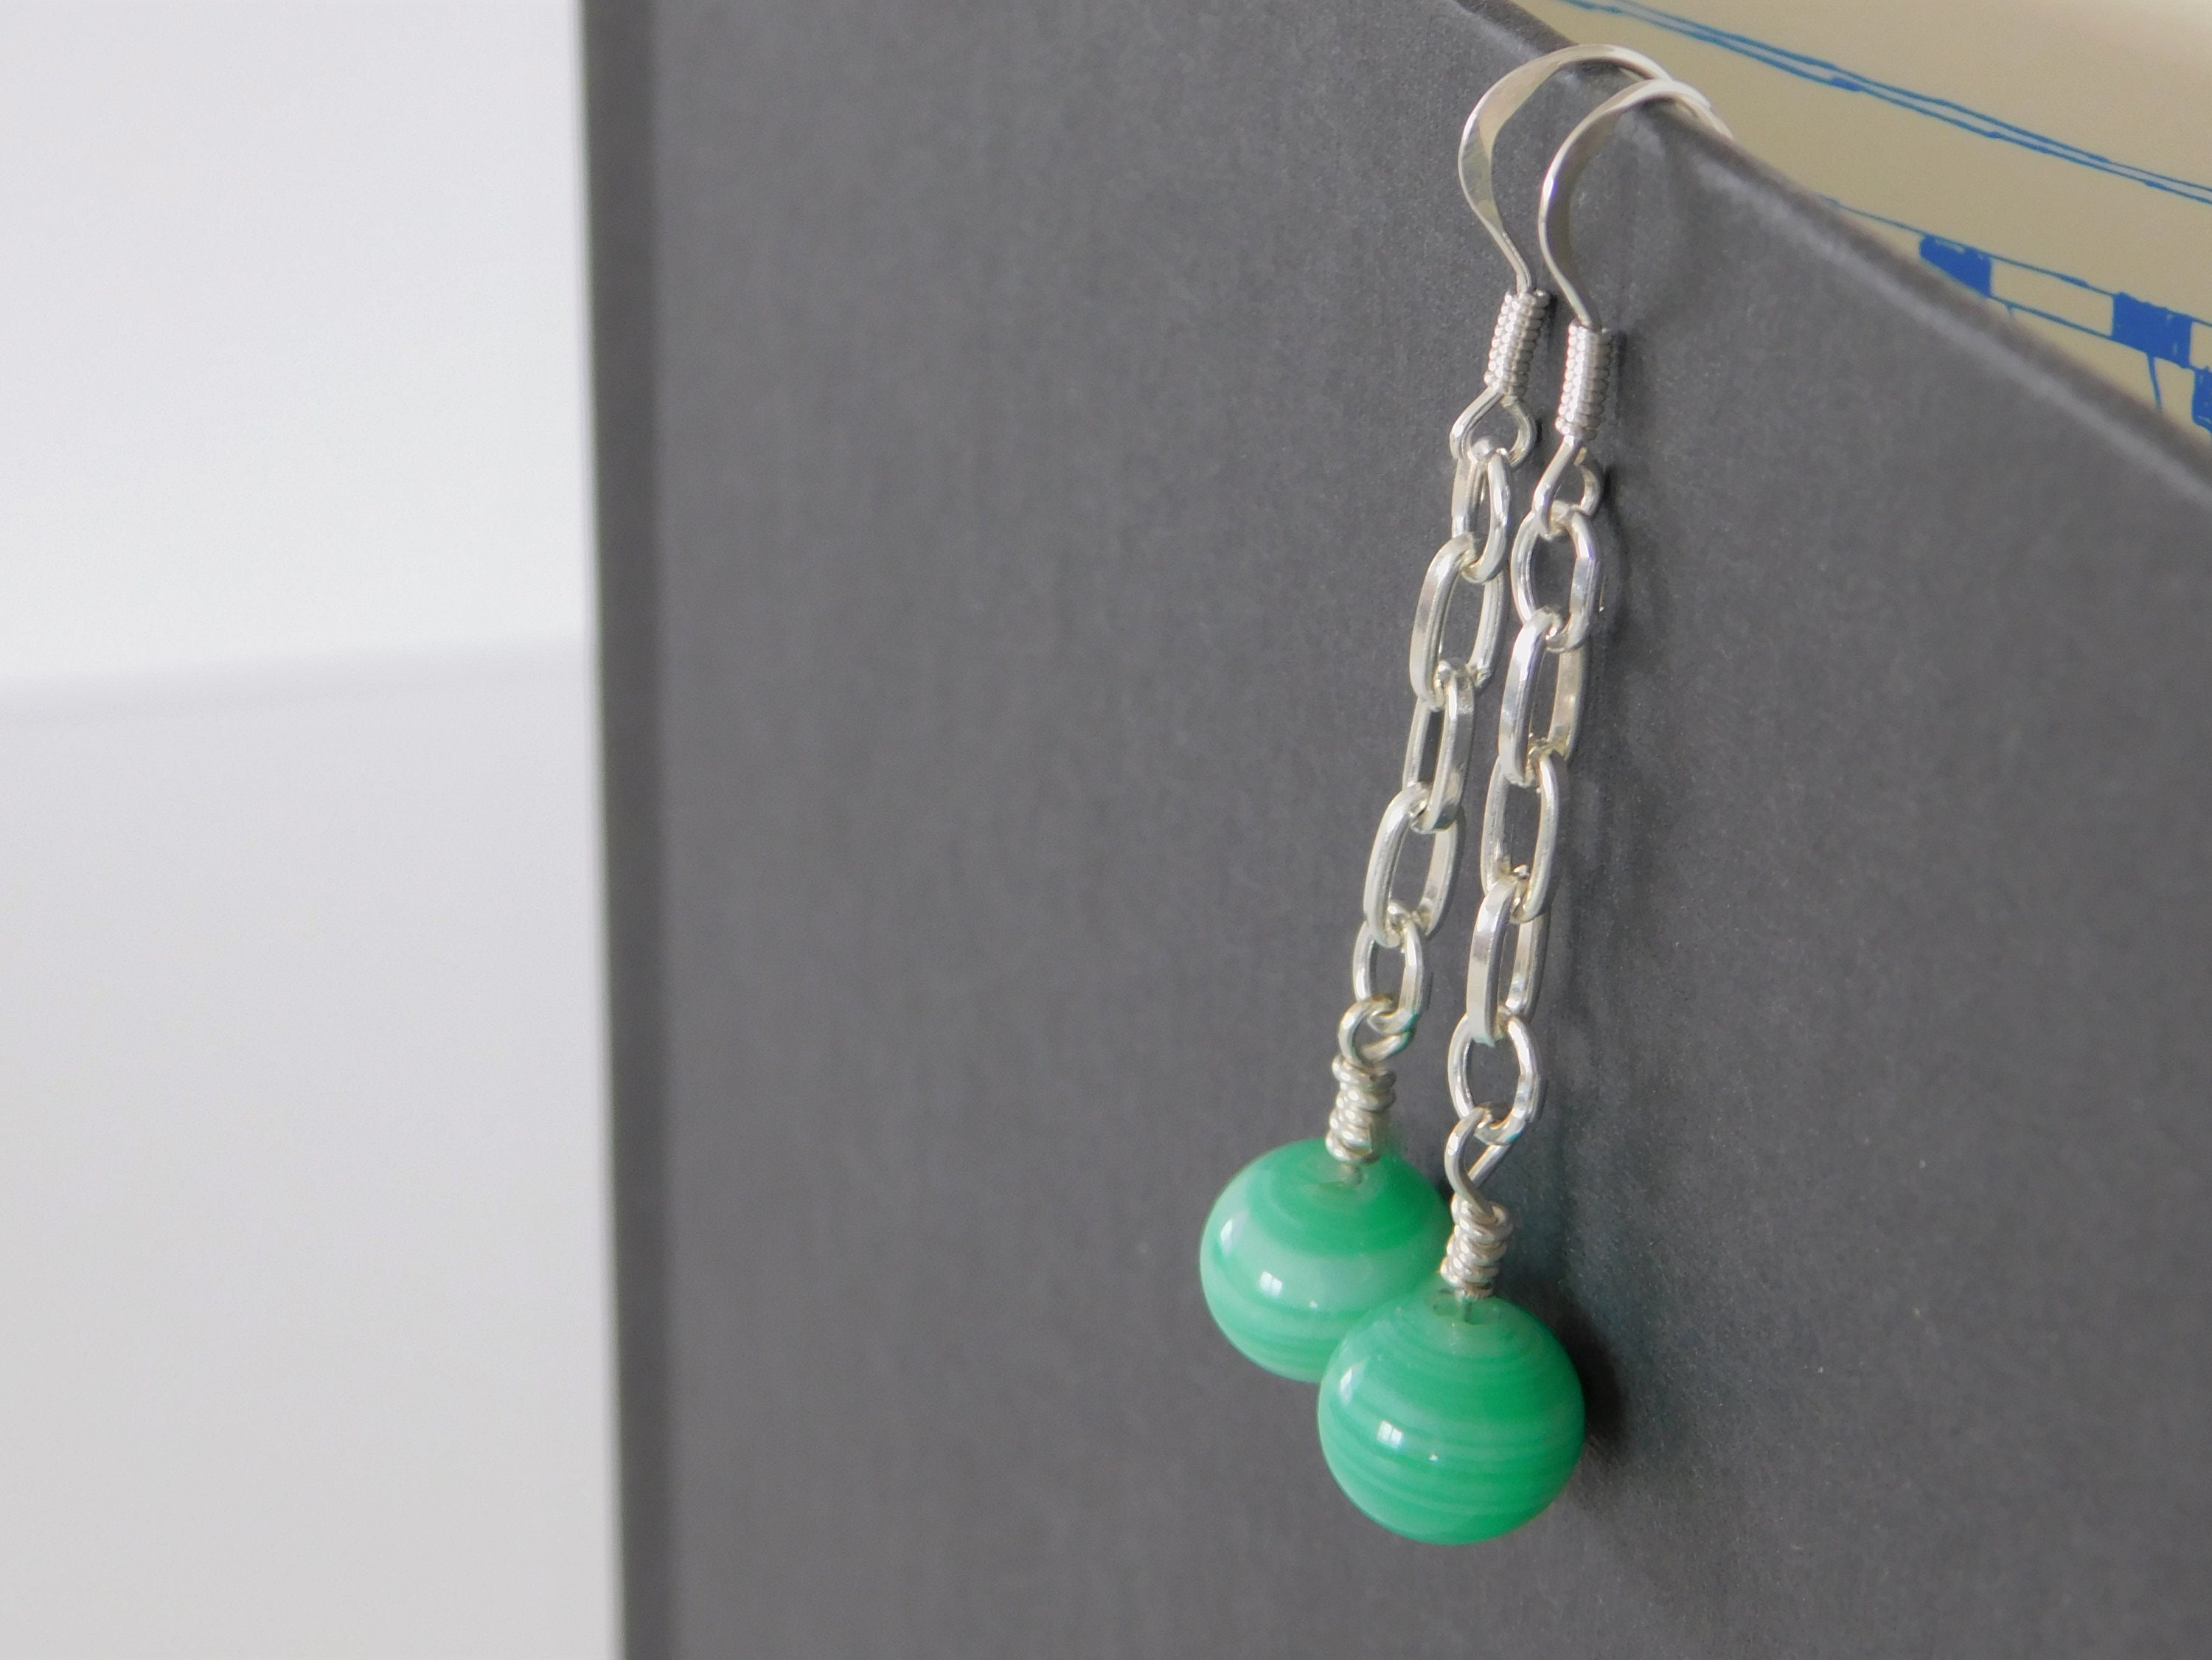 Silver Hanging Earrings With Glass Beads Rare Bead Jewelry Etsy